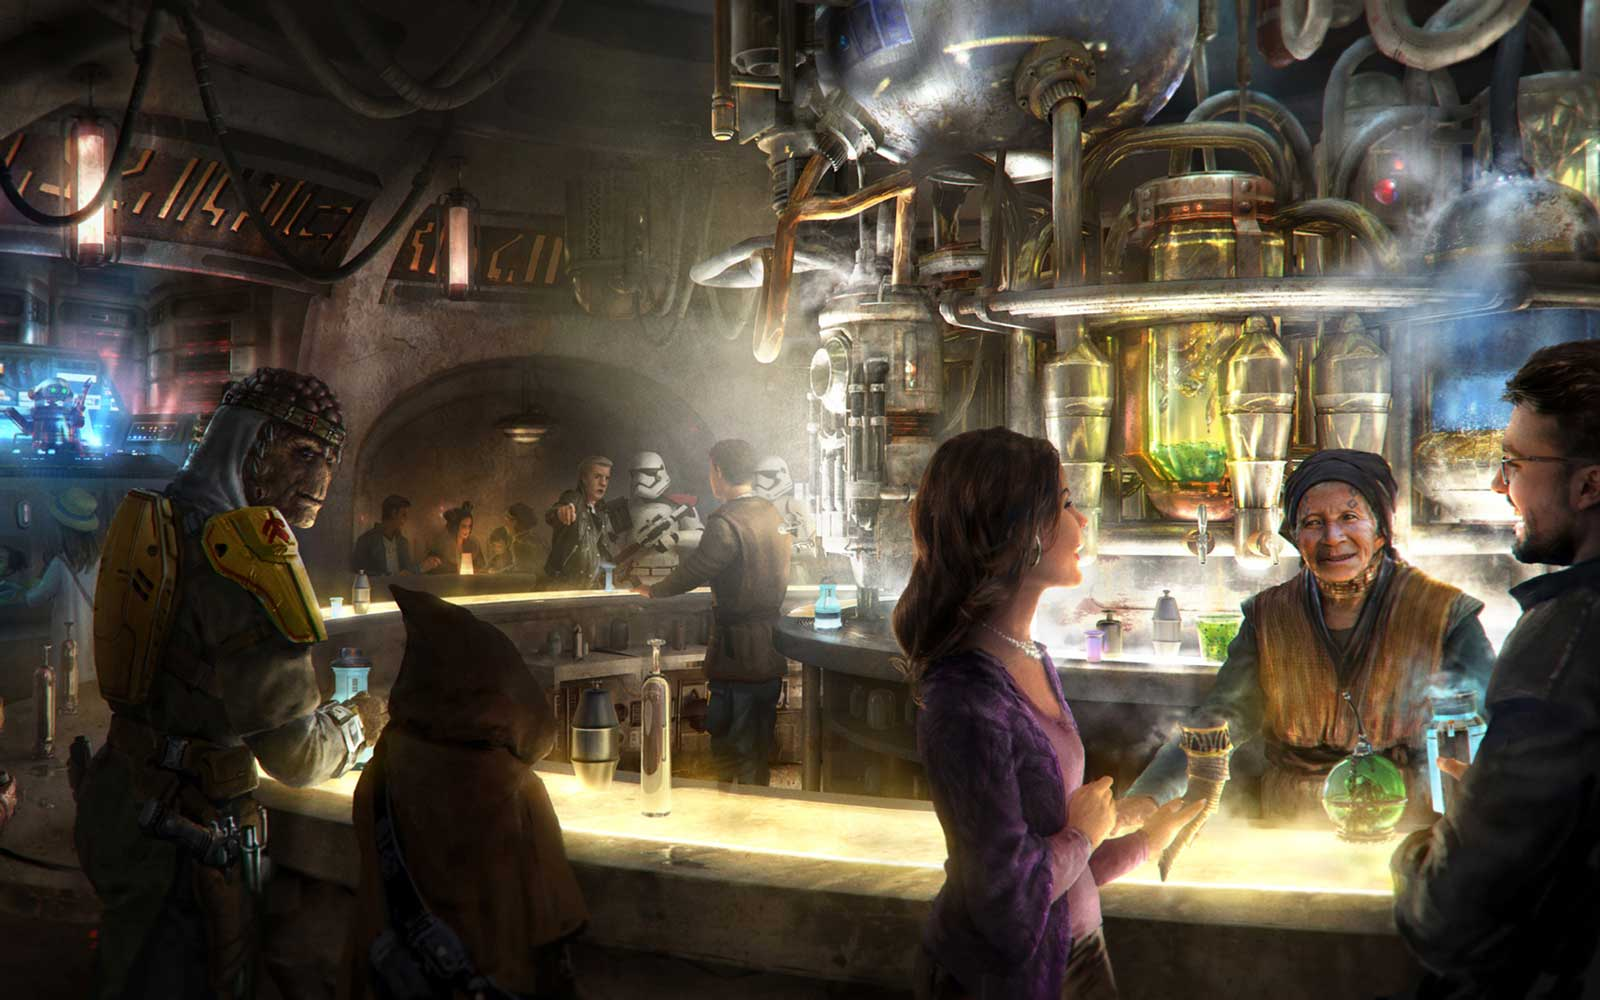 Disneyland's First-ever Bar Will Bring Morning Cocktails to the California Theme Park